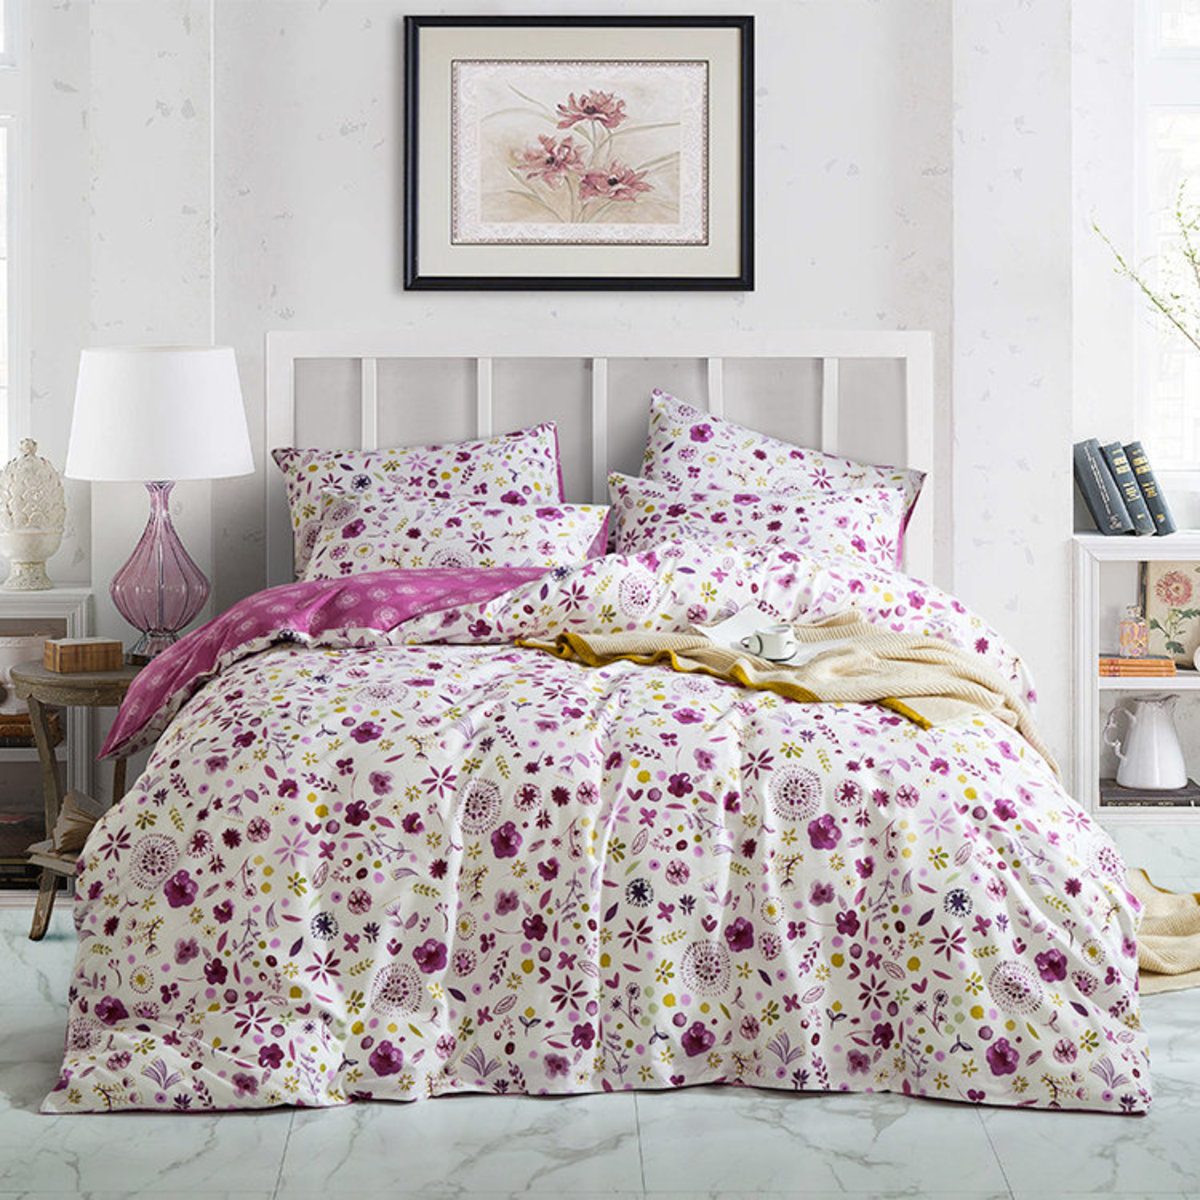 More than Silk™30S Trend Collection ECO® Sleepack - King (33027)